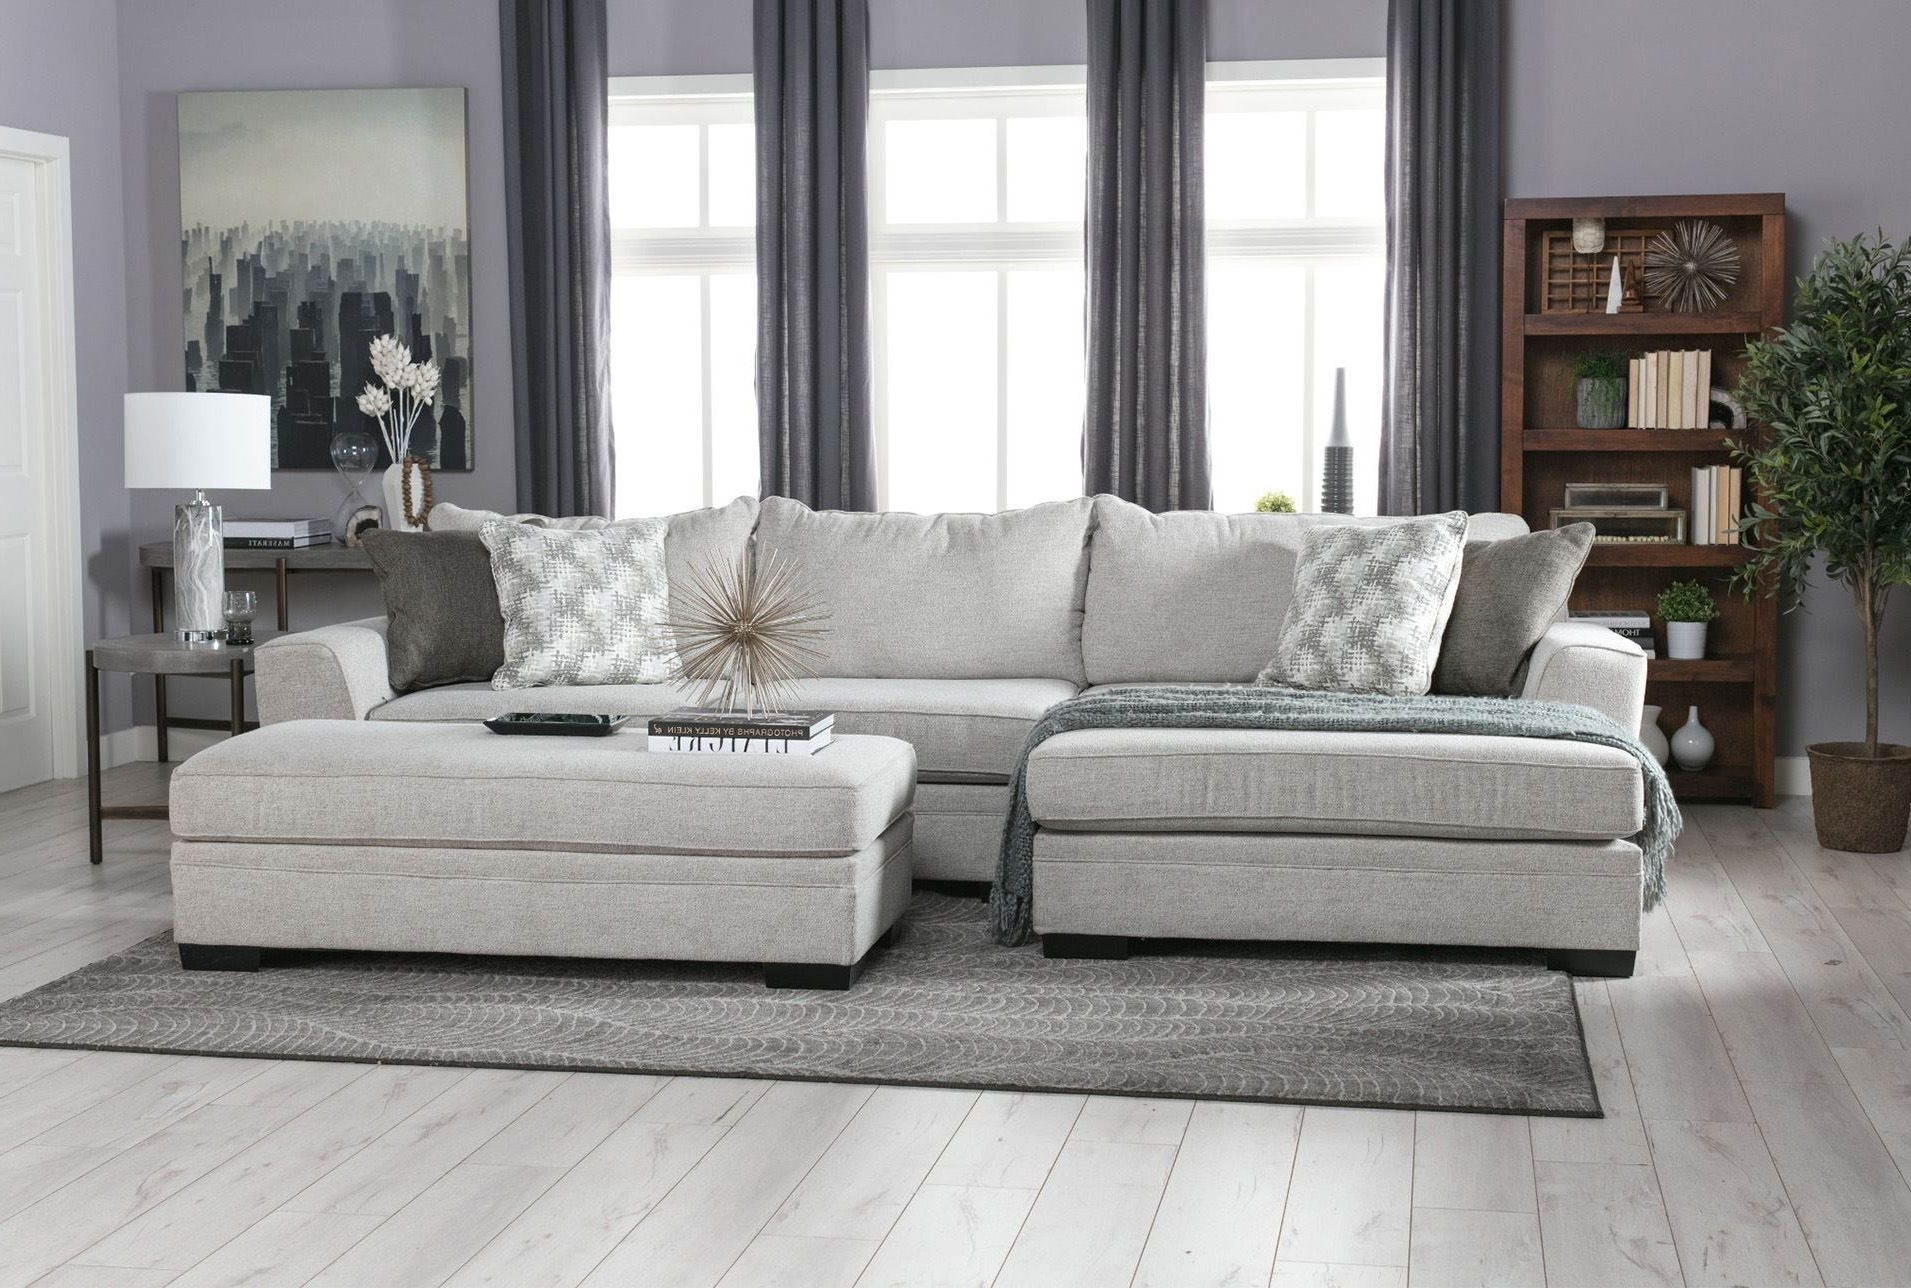 Aquarius Light Grey 2 Piece Sectional Wlaf Chaise Minimalist Inside Arrowmask 2 Piece Sectionals With Laf Chaise (Image 4 of 25)